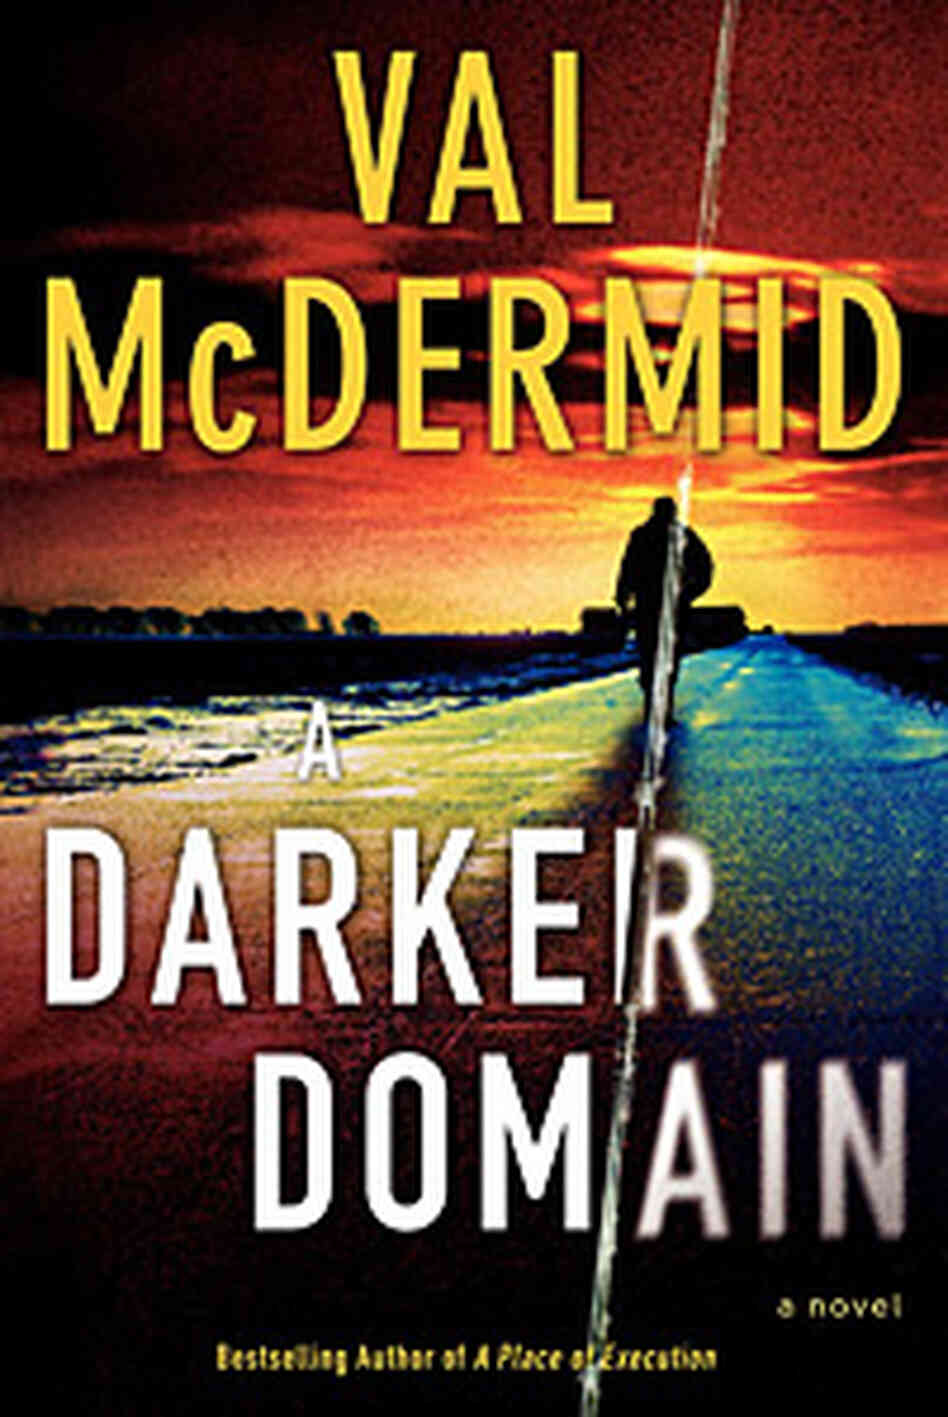 'A Darker Domain' Cover 200